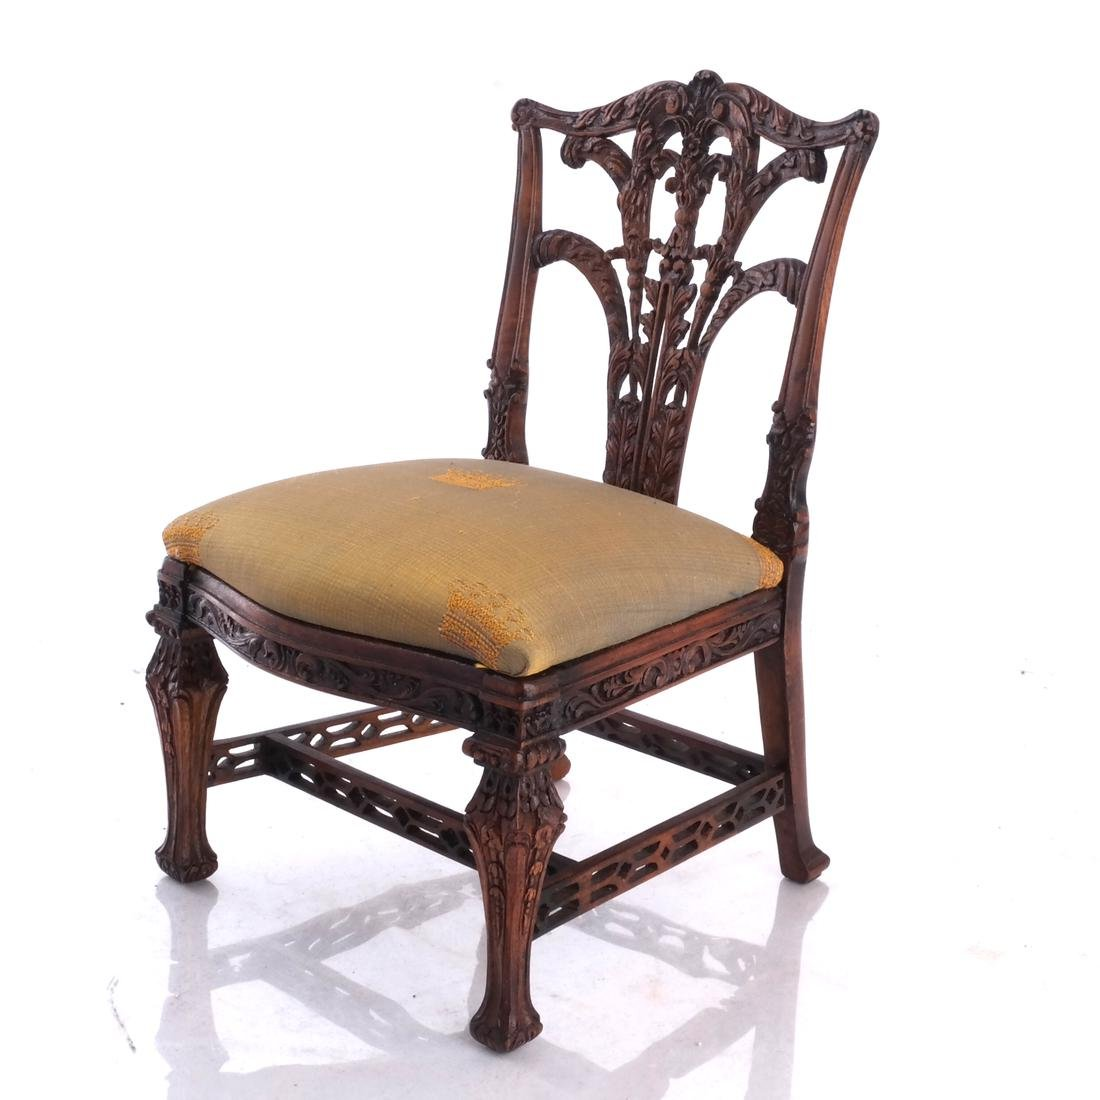 Miniature English Chippendale-Style Side Chair